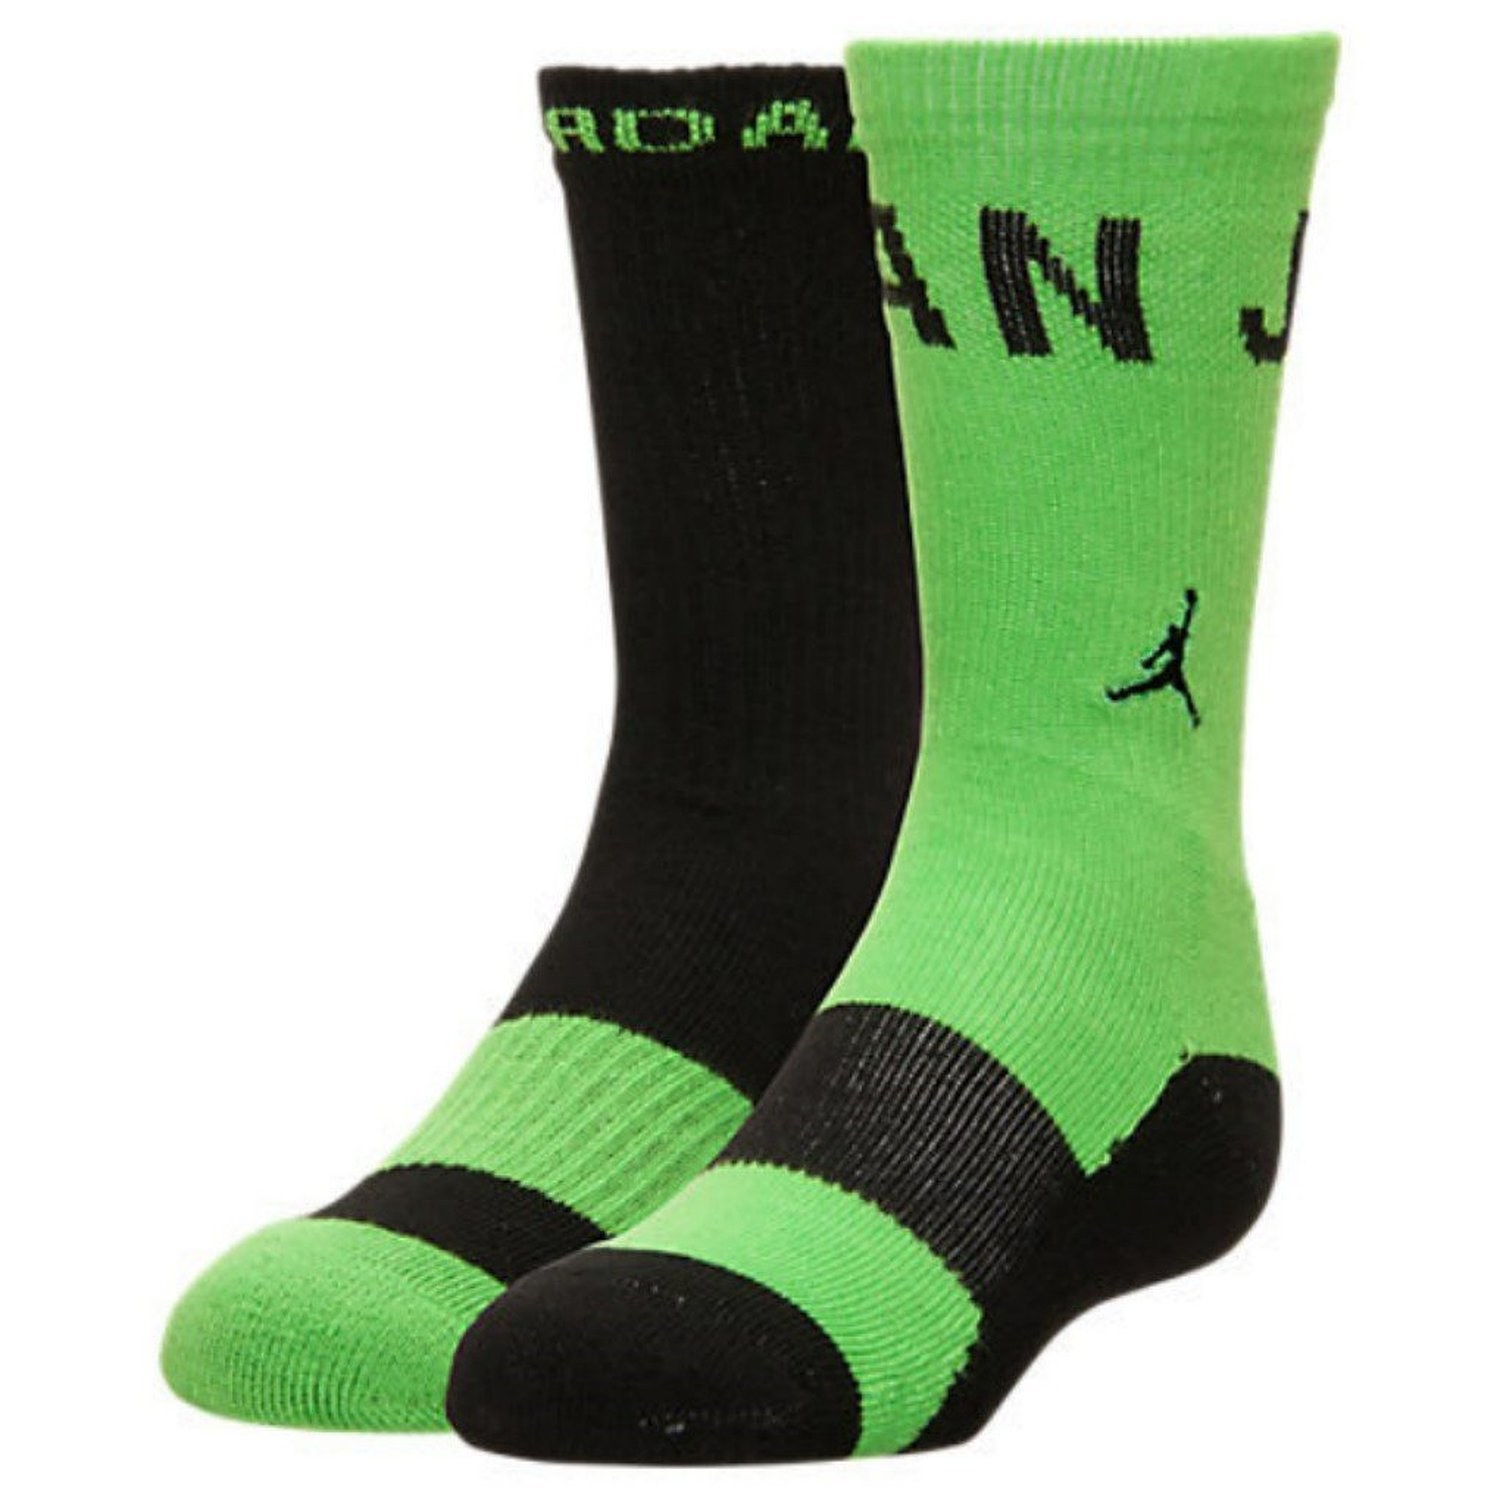 ... Shoes Socks Mud · NIKE Kids' Jordan Two-Tone 2-Pack Crew Socks  (Electro-Green